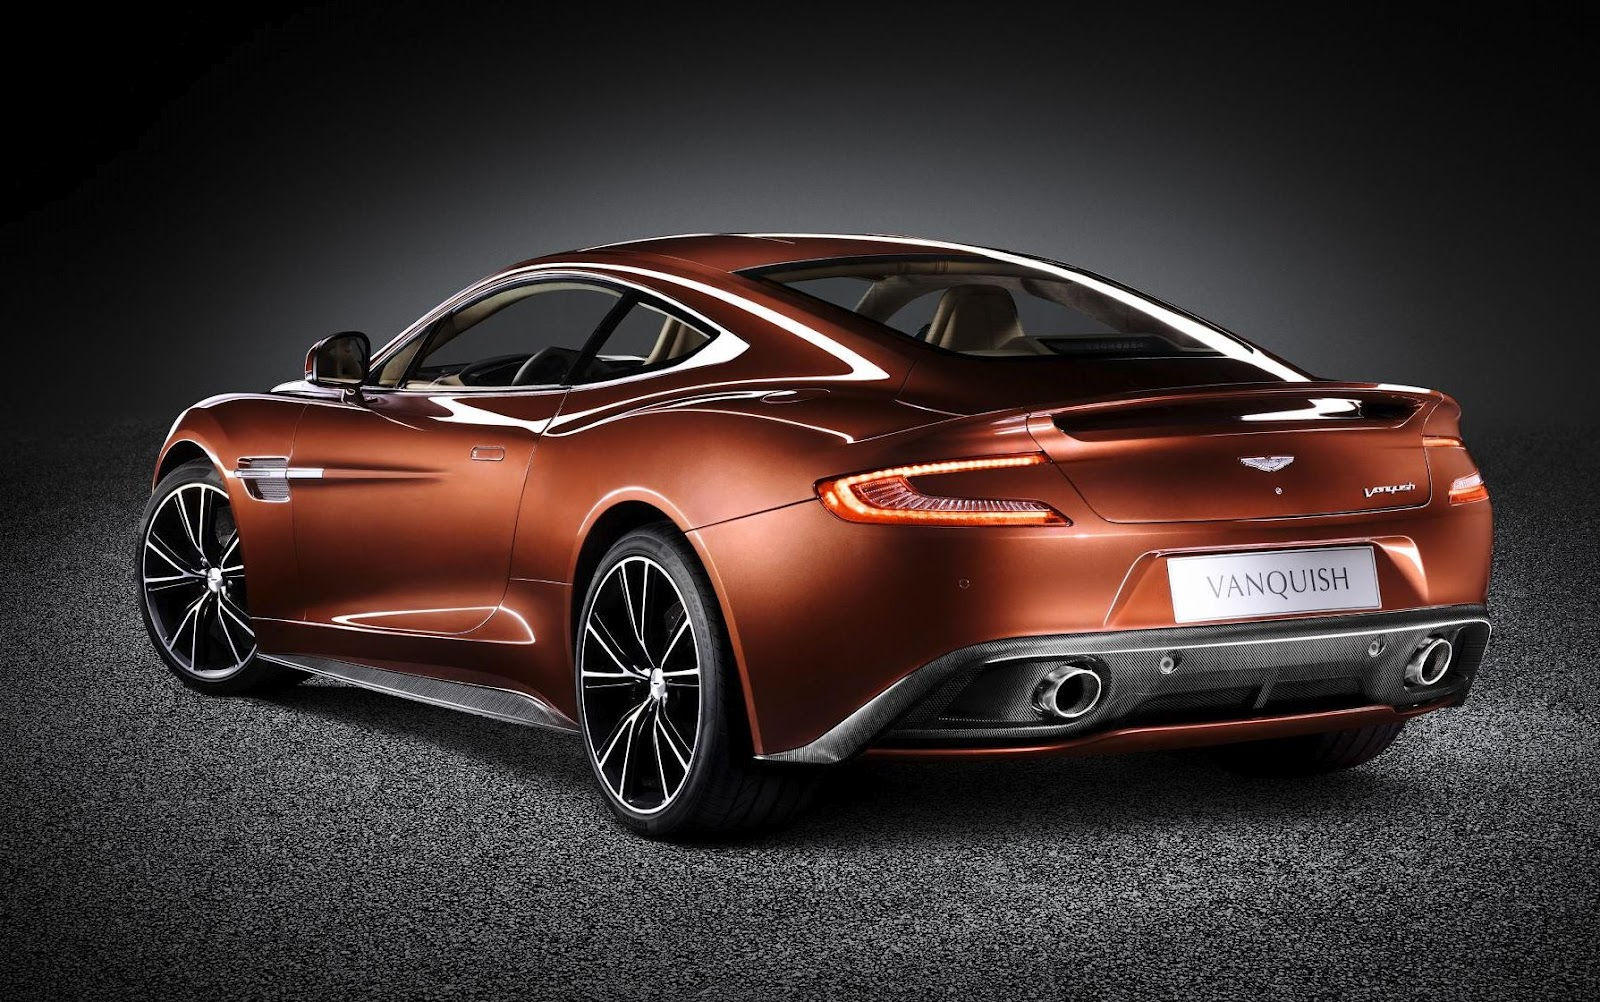 Cars Aston Martin: All Cars Logo HD: 2012 ASTON MARTIN VANQUISH REVEALED